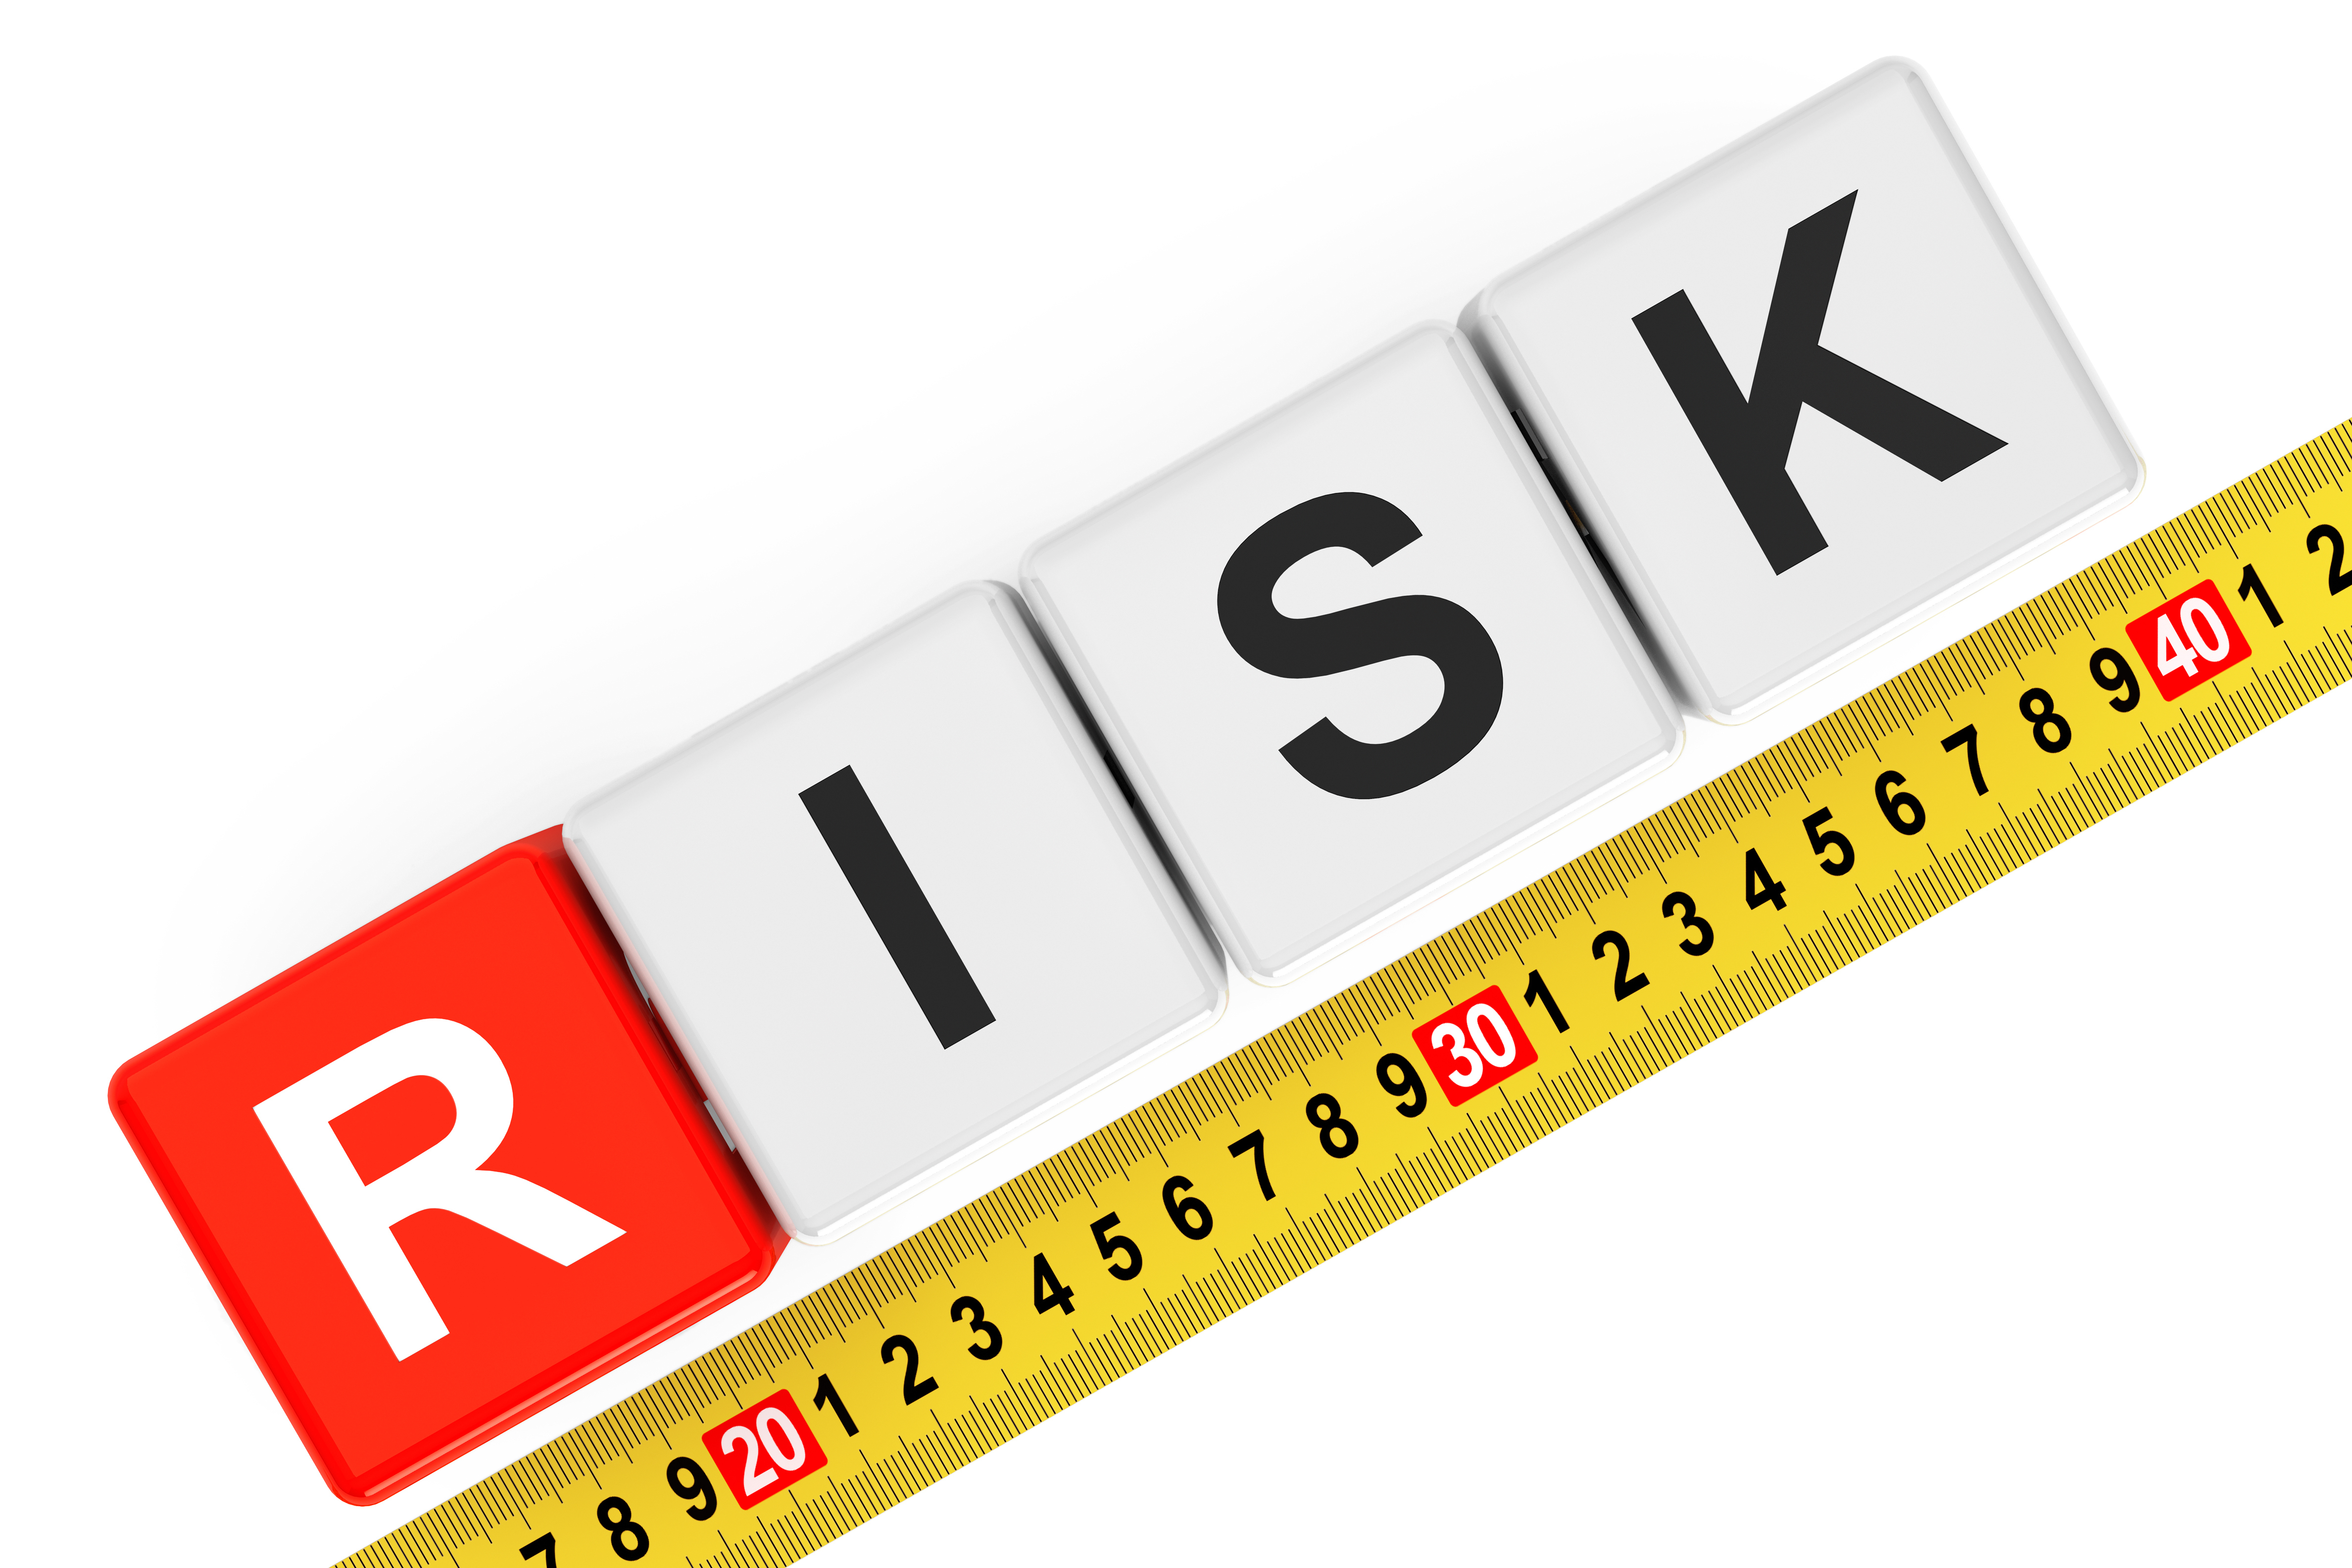 Assessing Risk And Preventing Food Fraud With A PRN System